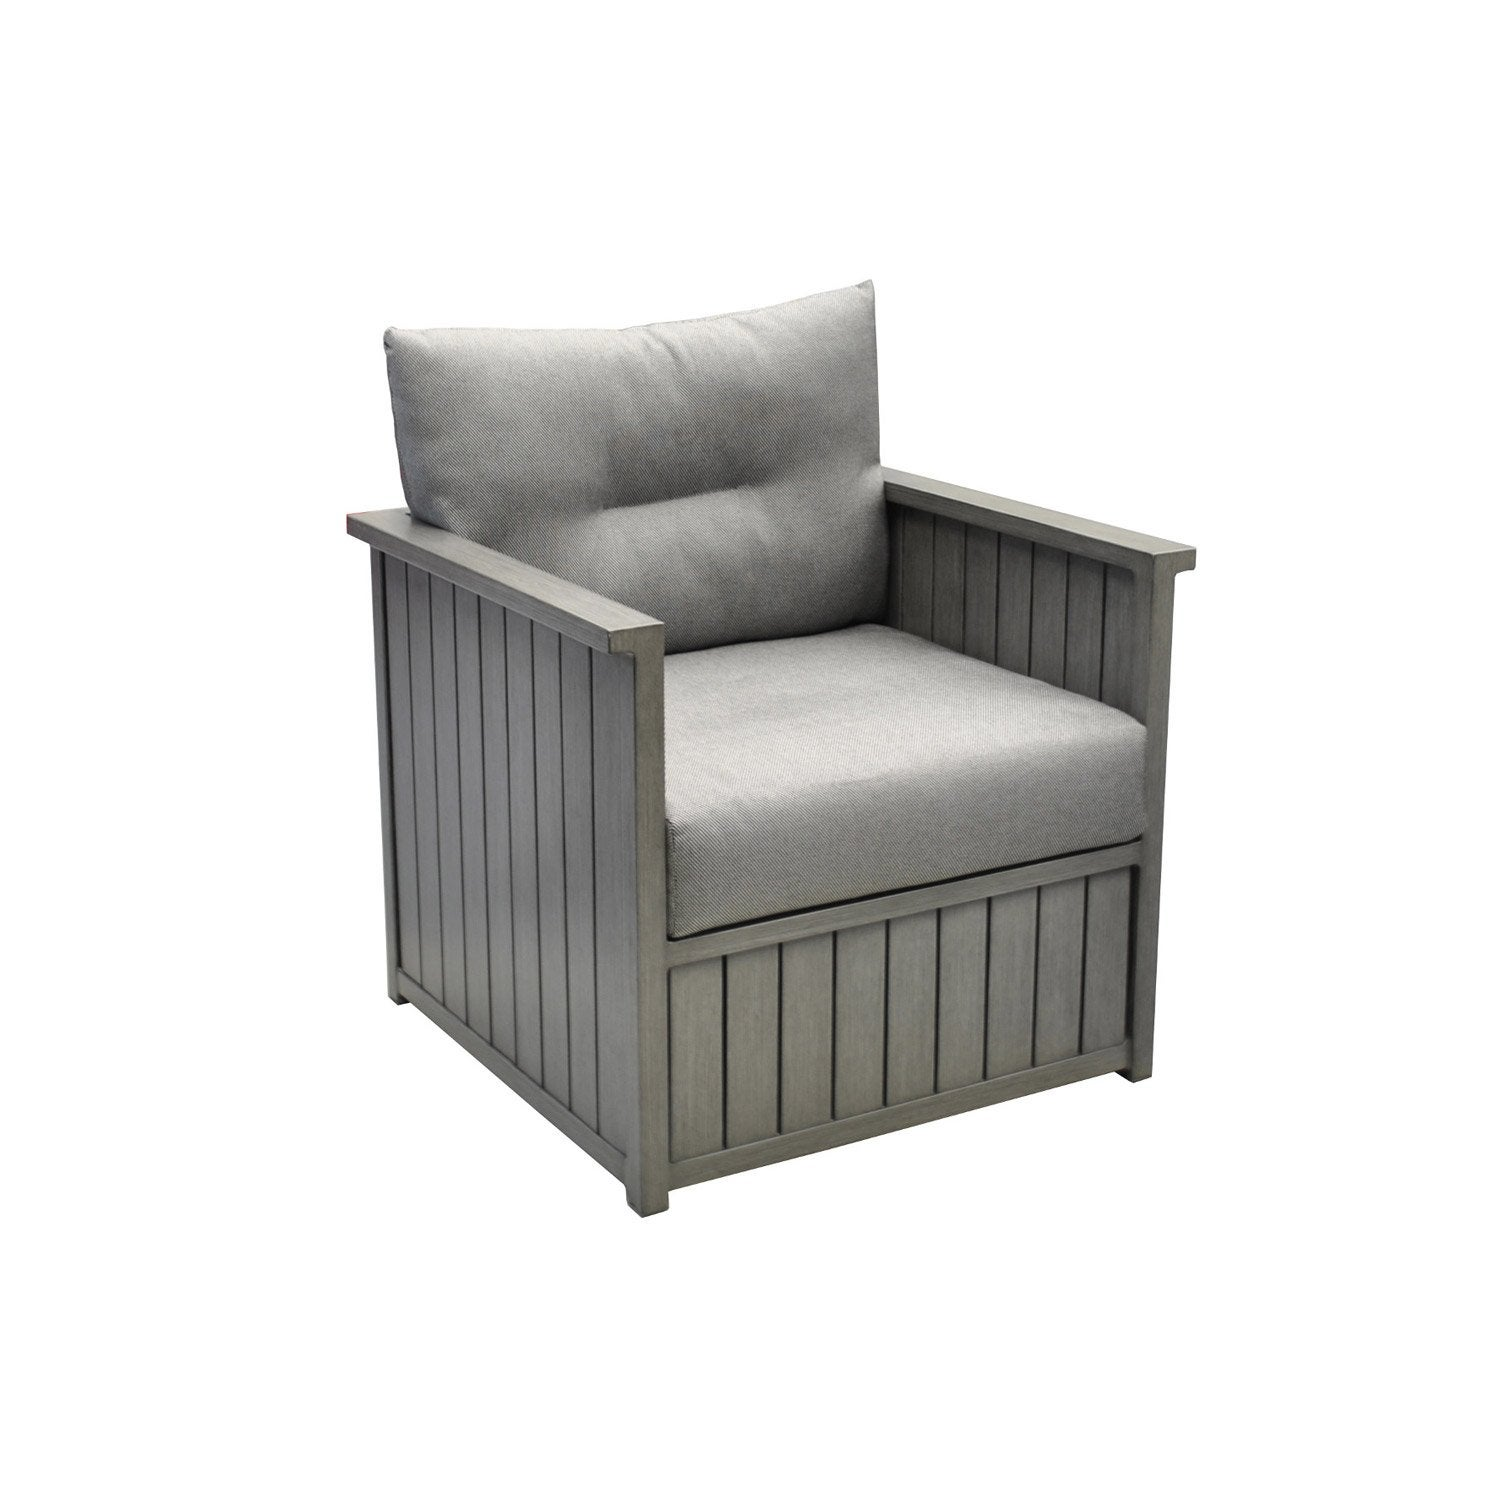 fauteuil bas de jardin en aluminium milano gris leroy merlin. Black Bedroom Furniture Sets. Home Design Ideas